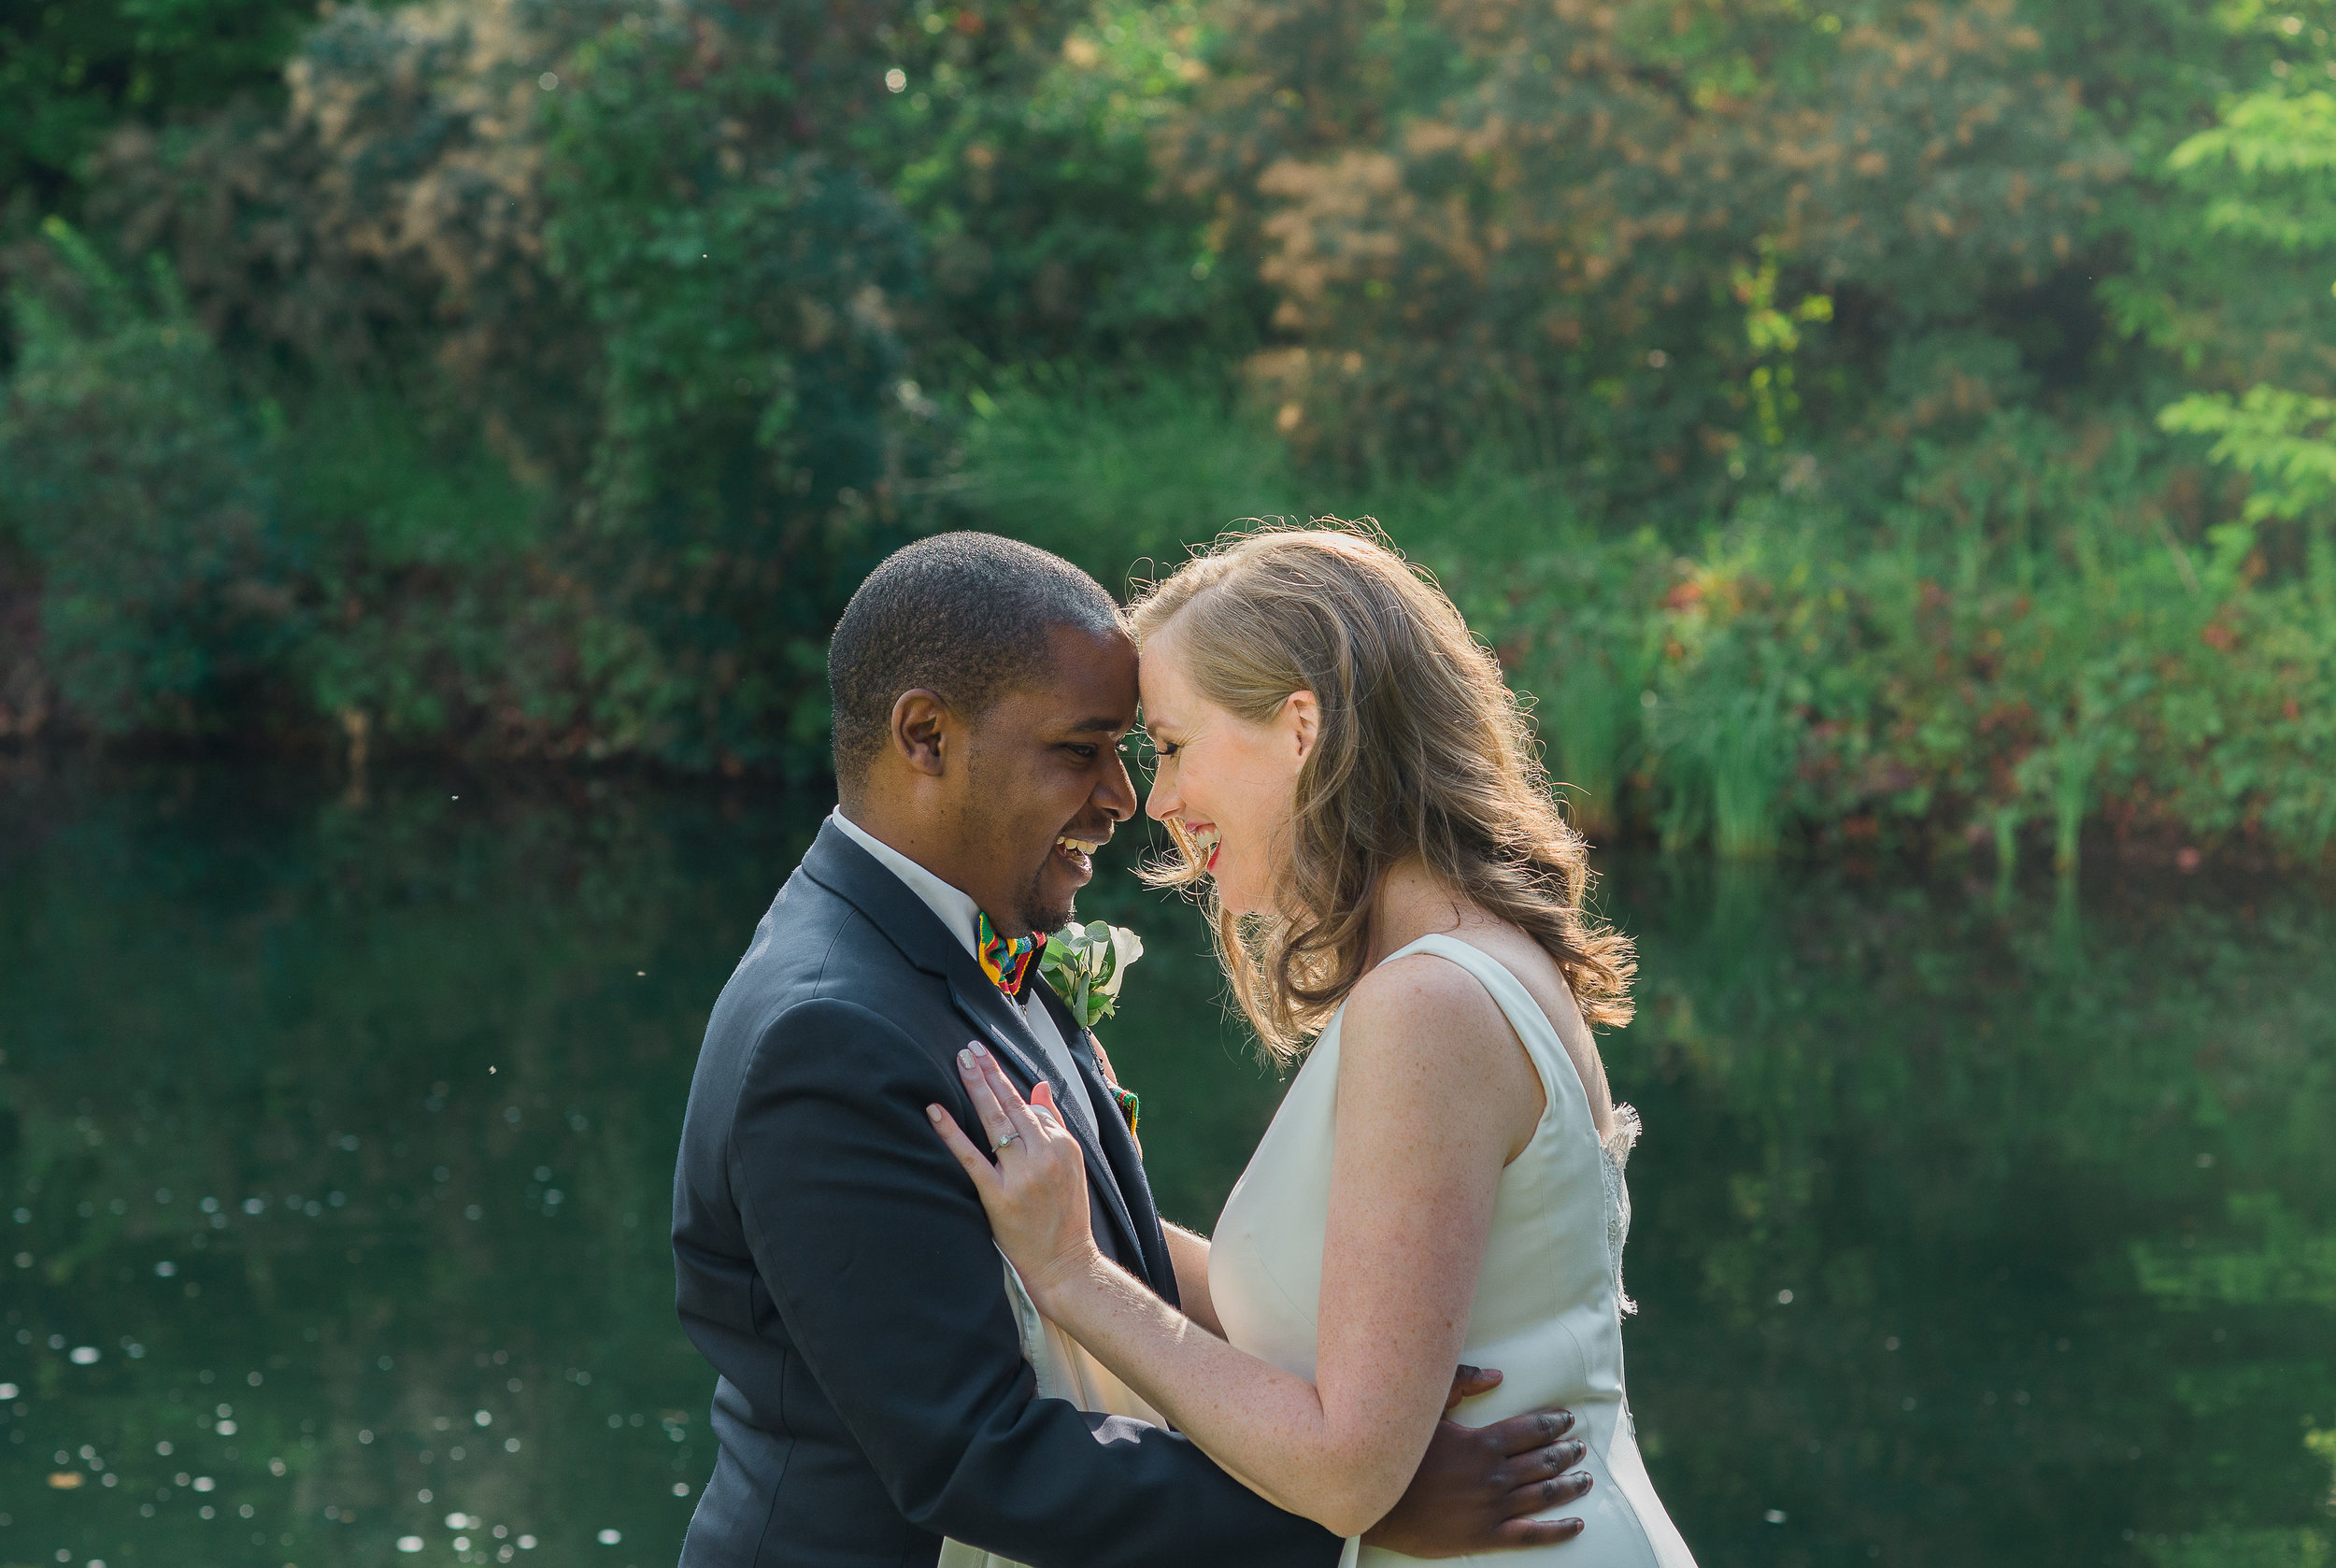 Christine_and_Leon_wedding_lana_nimmons_photography9728.jpg